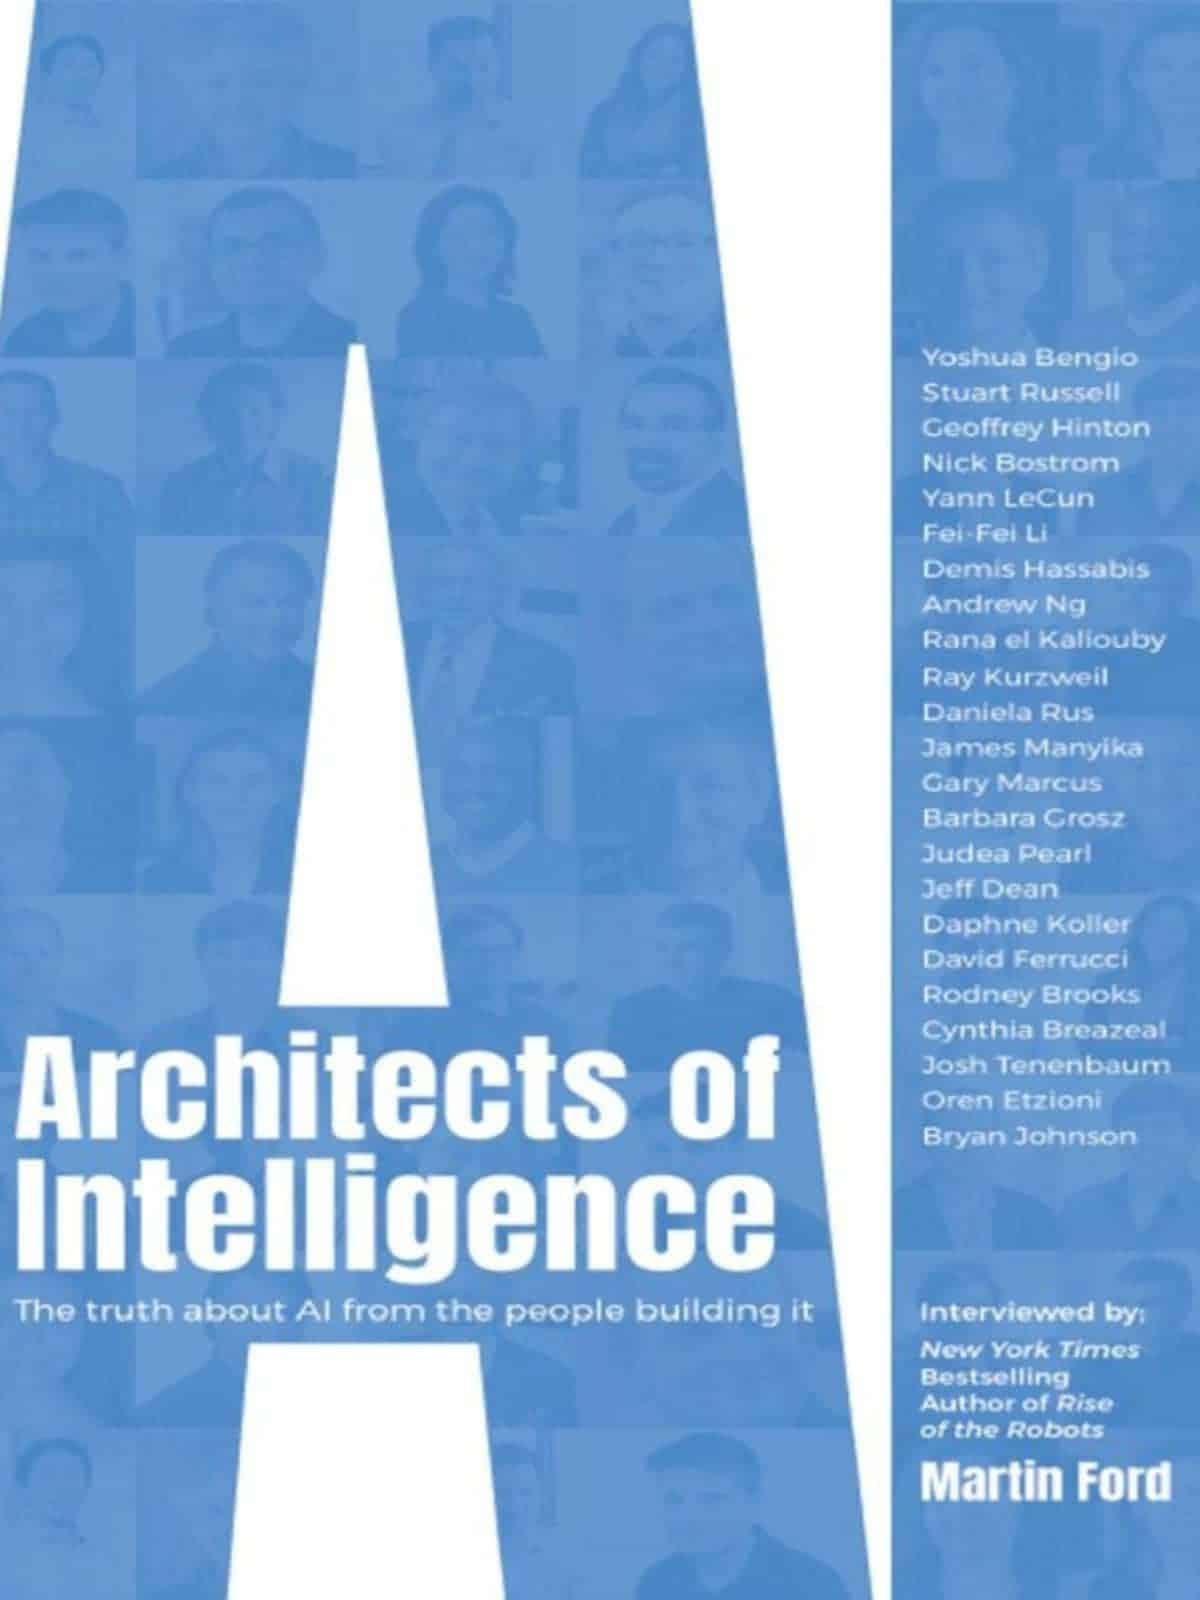 Architects of Intelligence: The Truth About AI From the People Building It by Martin Ford ($15.97) | Amazon's Best Selling Tech Kindle eBooks